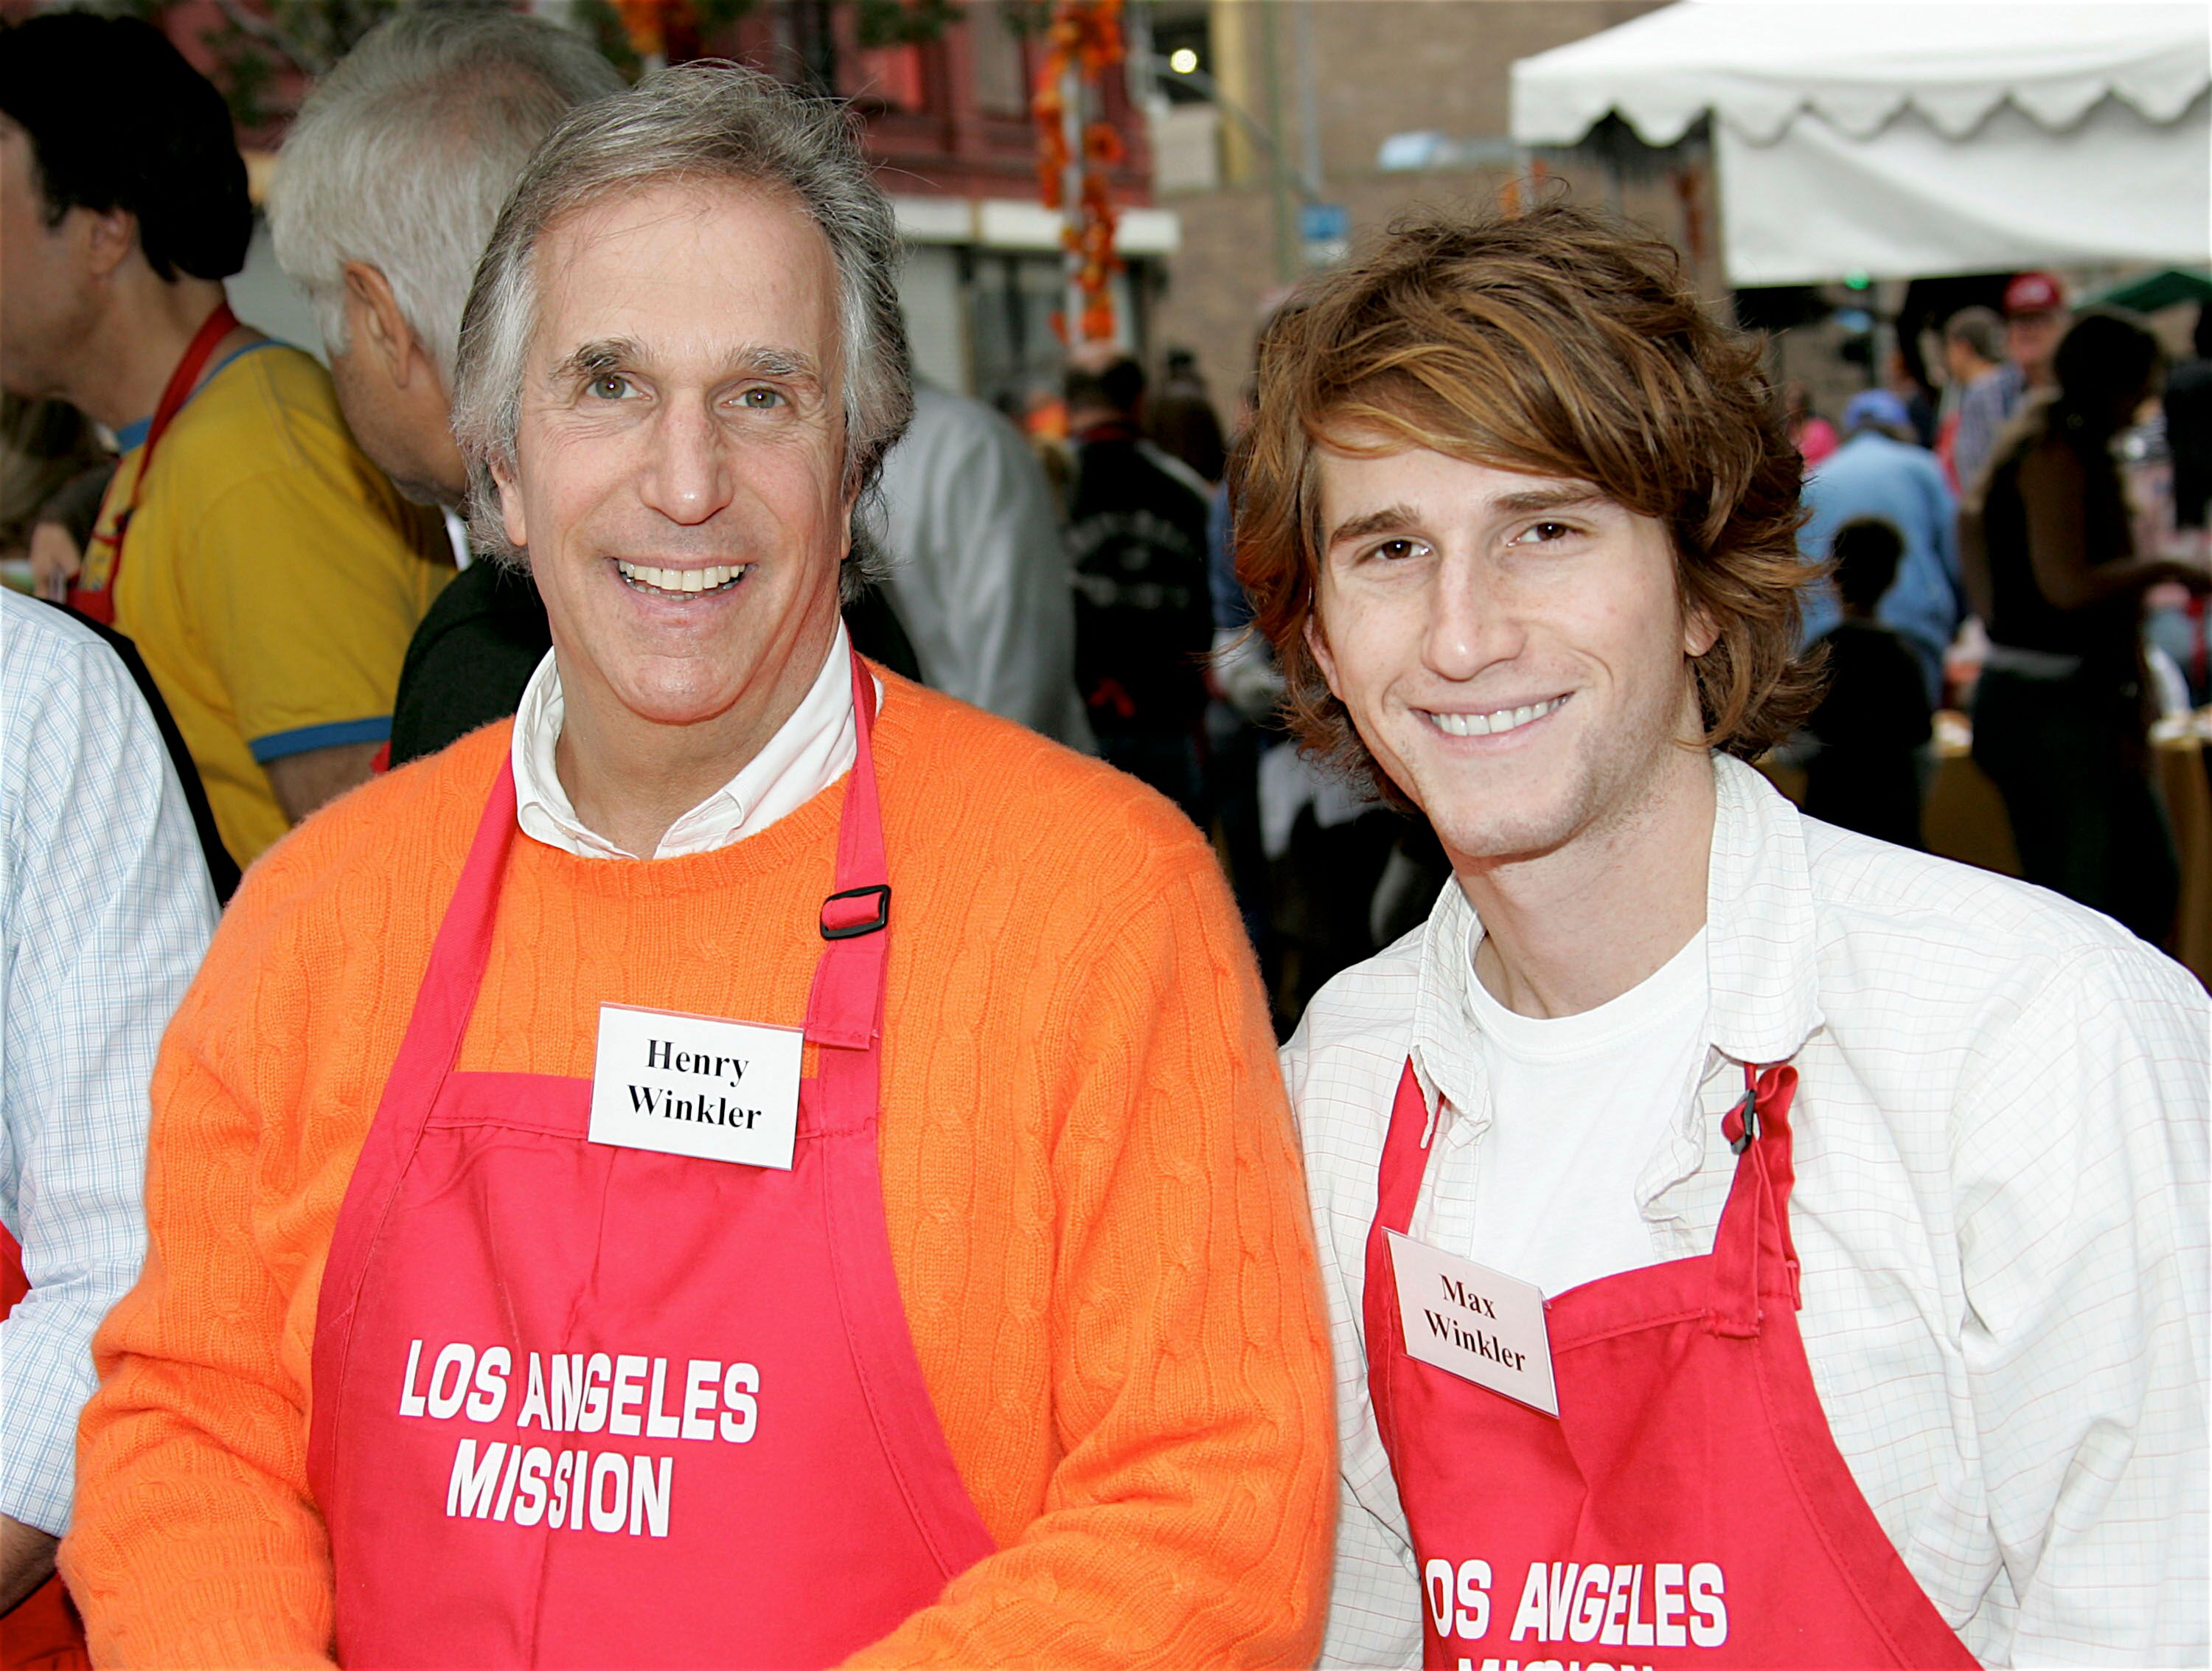 Henry Winkler and Max Winkler pose at the Los Angeles Mission Thanksgiving. | Source:Getty Images